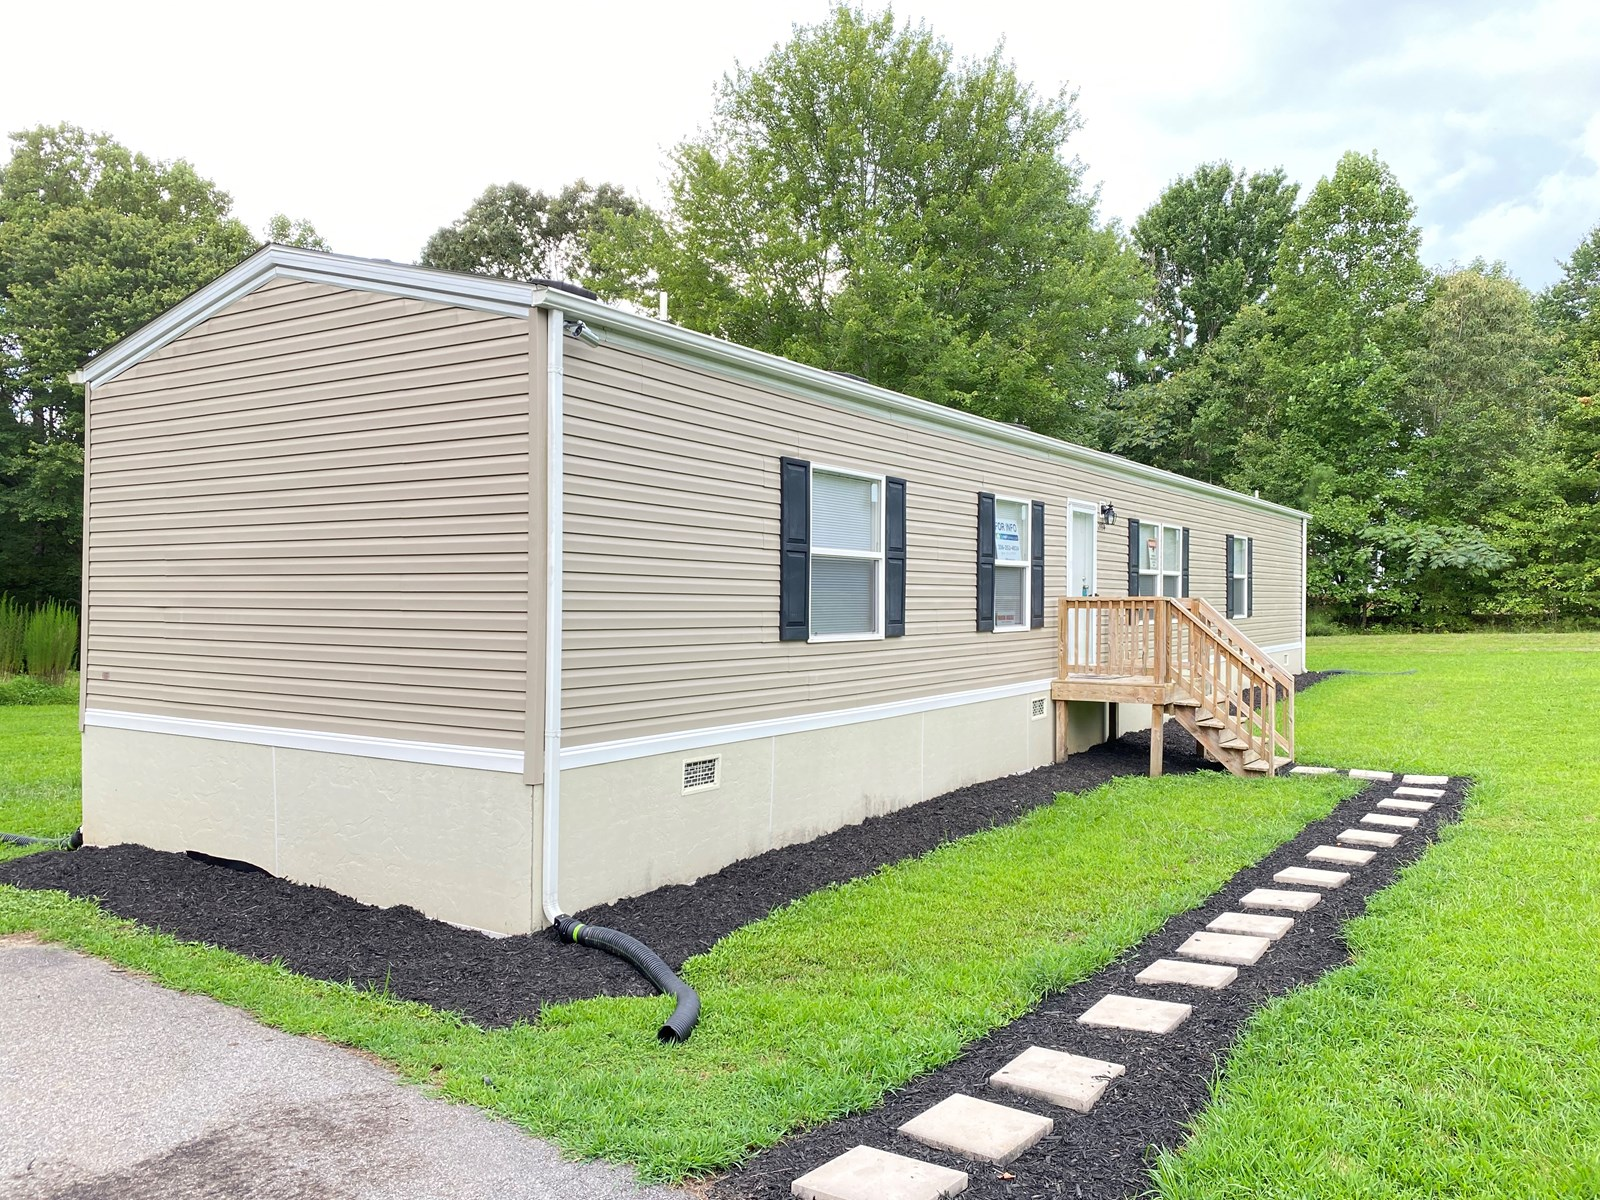 Country Affordable 1150 sq. ft. Manufactured Home on 3.15 ac